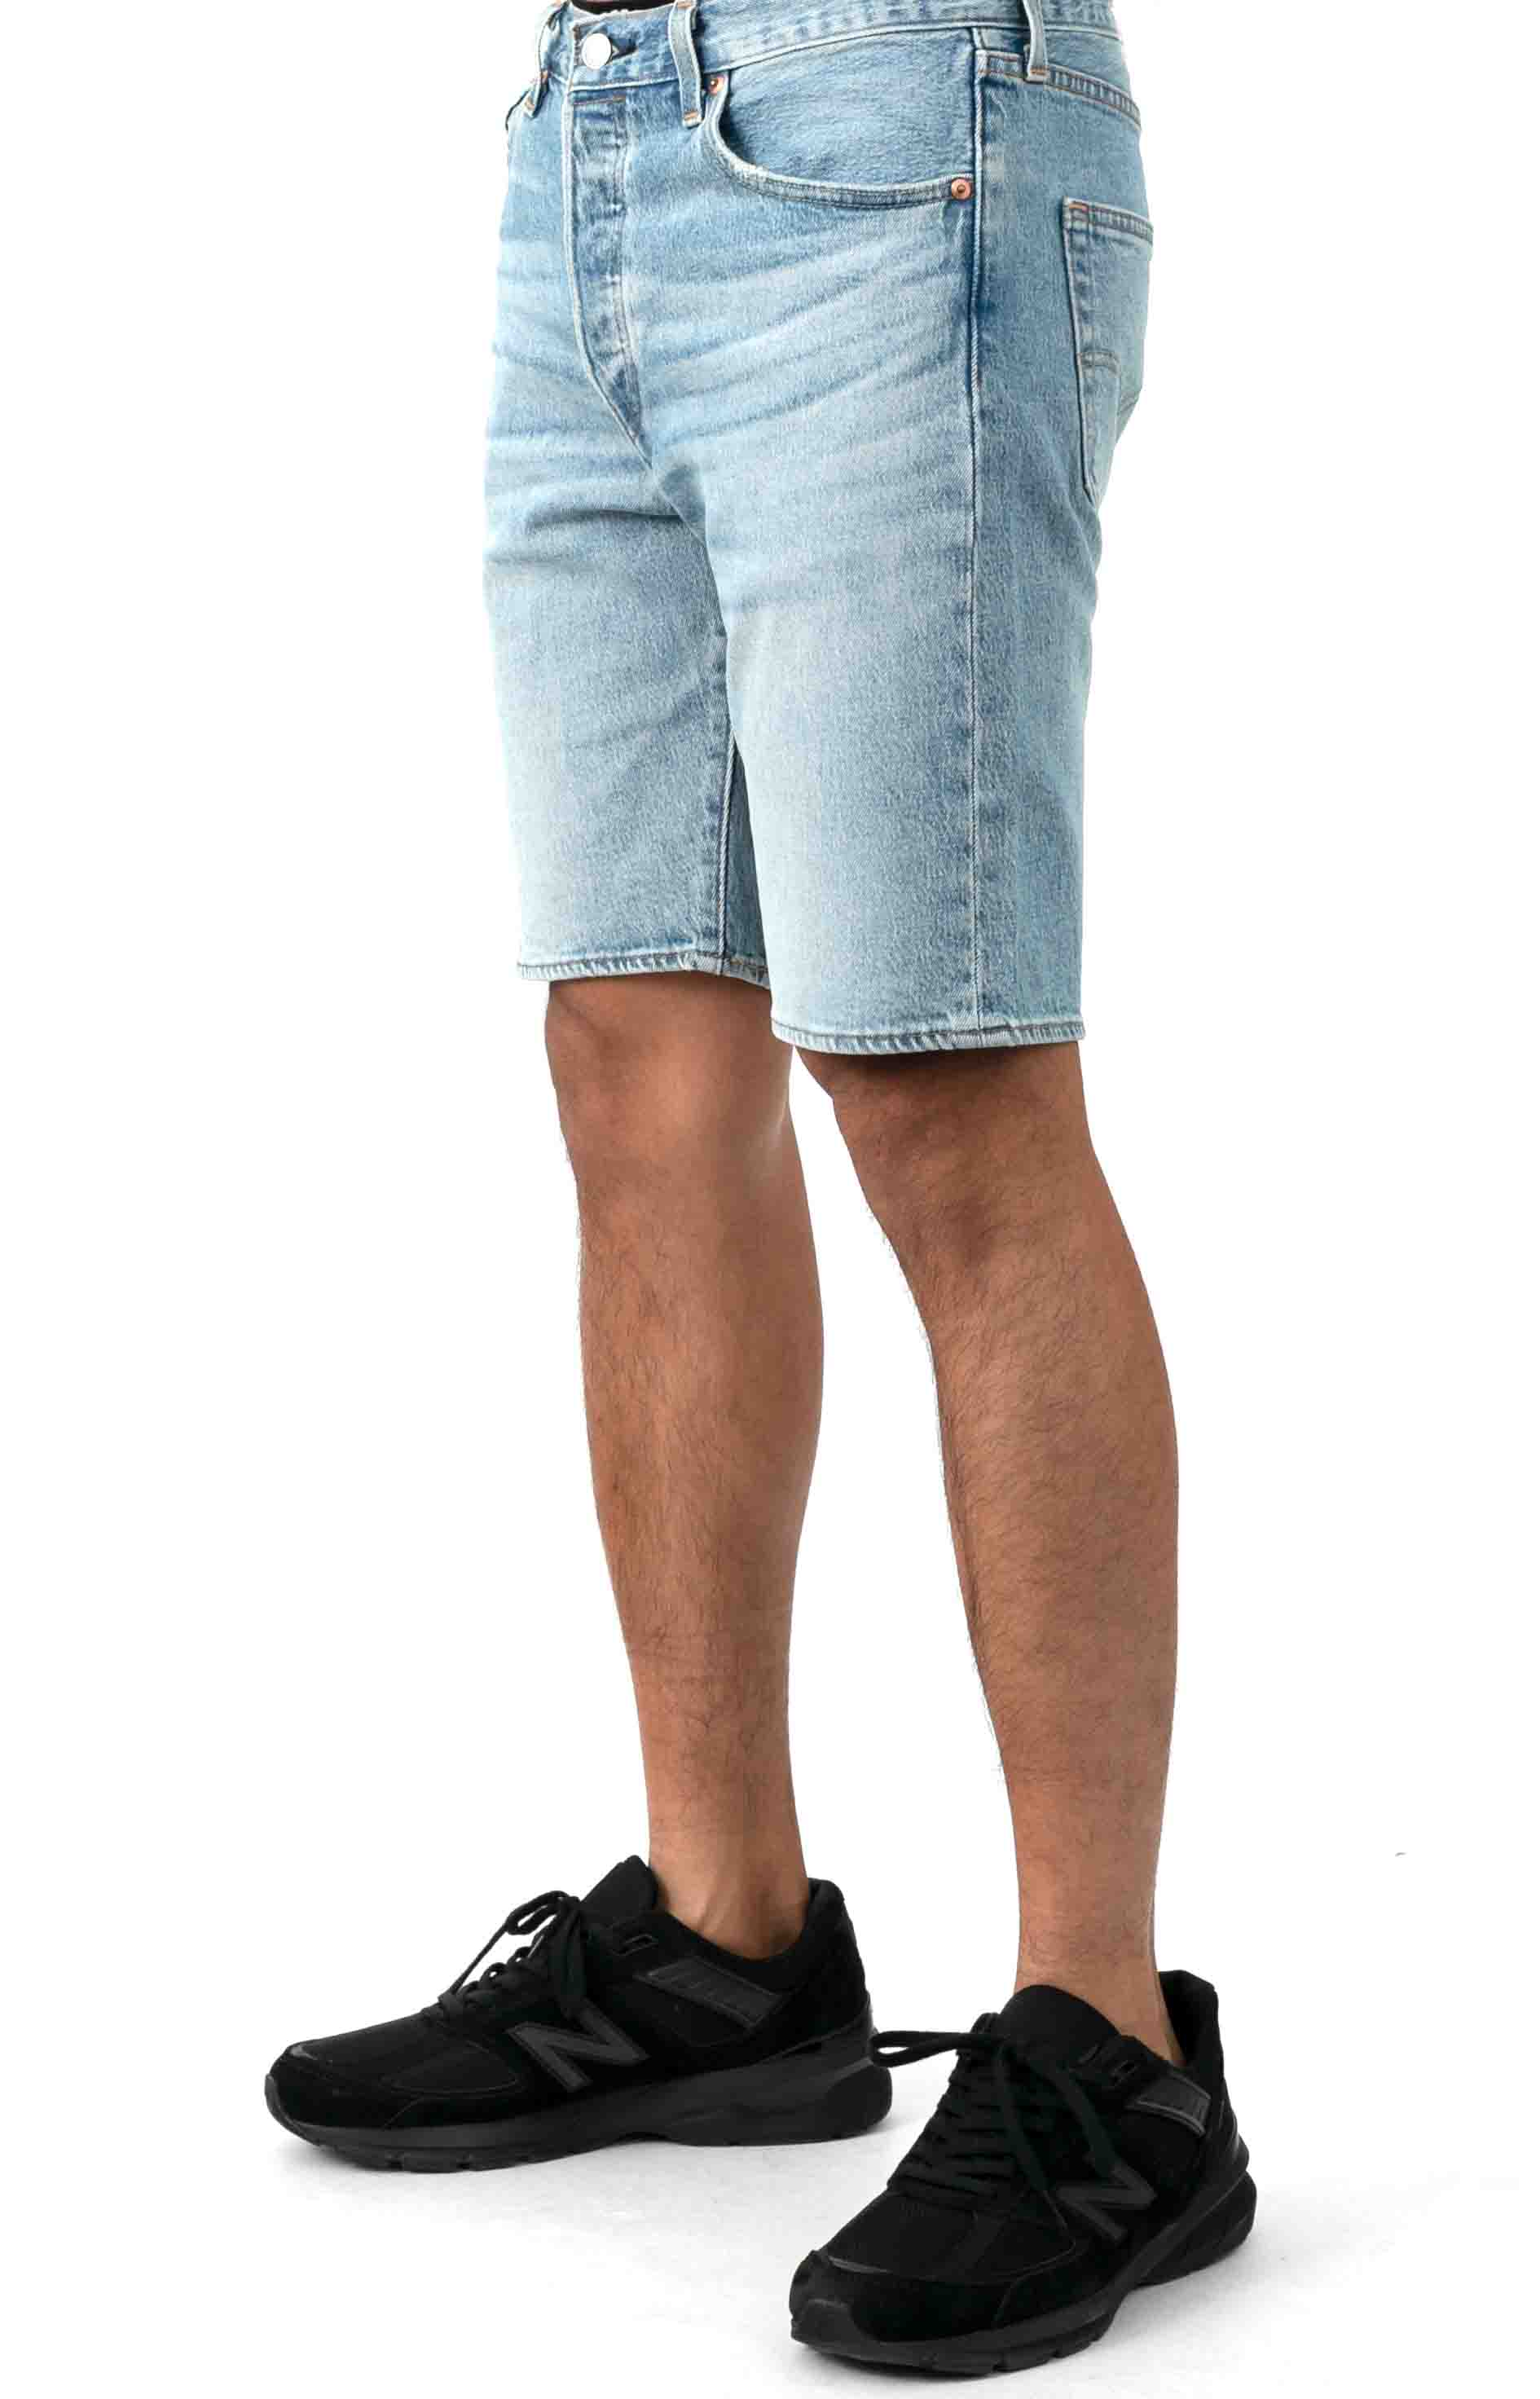 (36512-0100) 501 Hemmed 9 in. Shorts - Wild Boar Light Wash